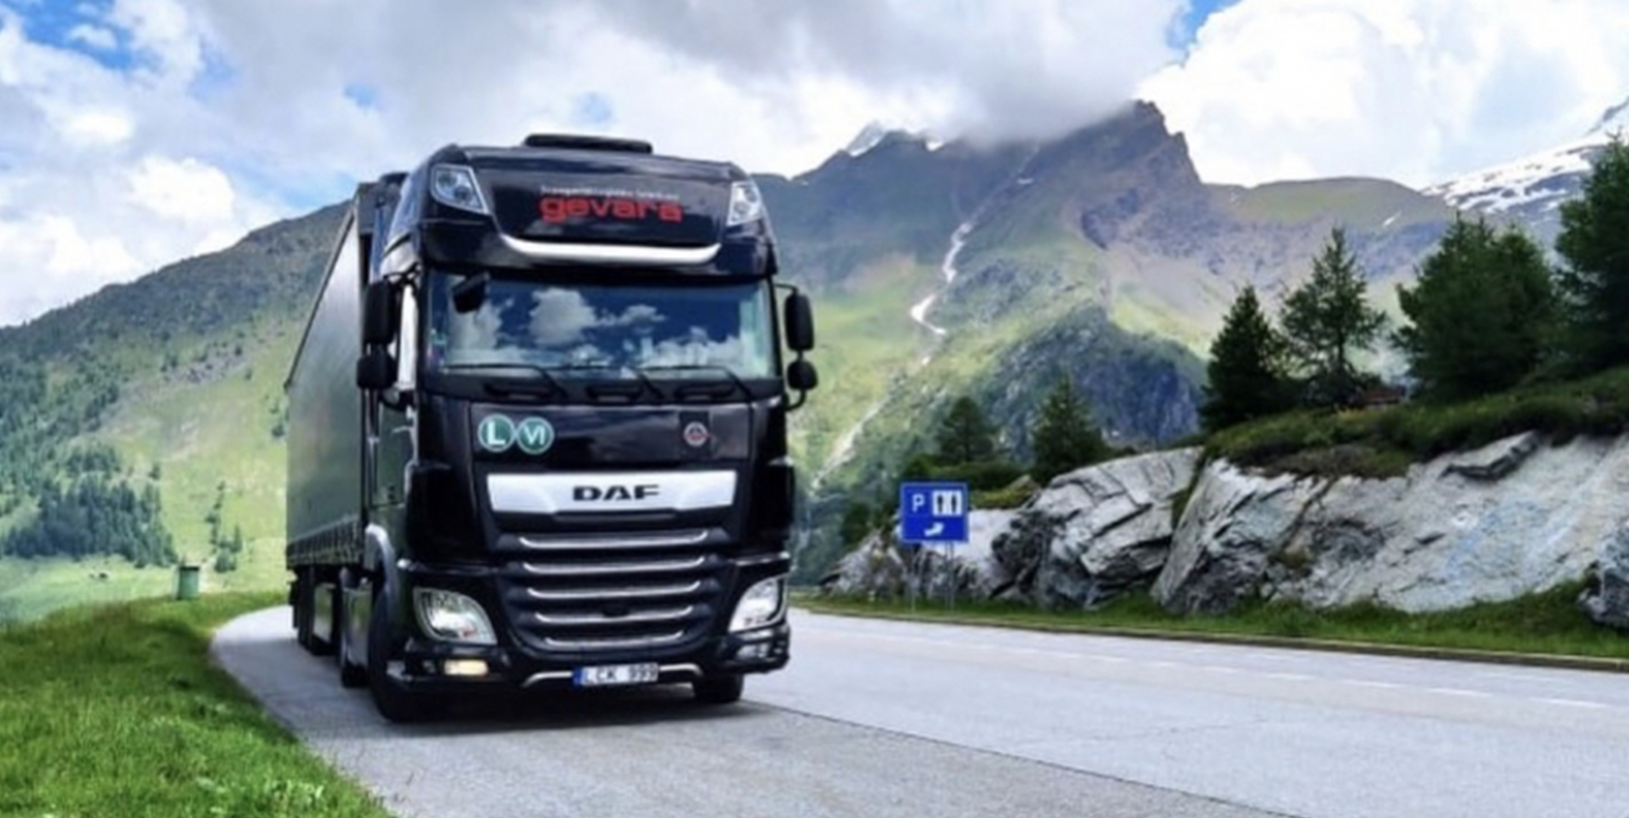 gevara-truck-transportation-spain